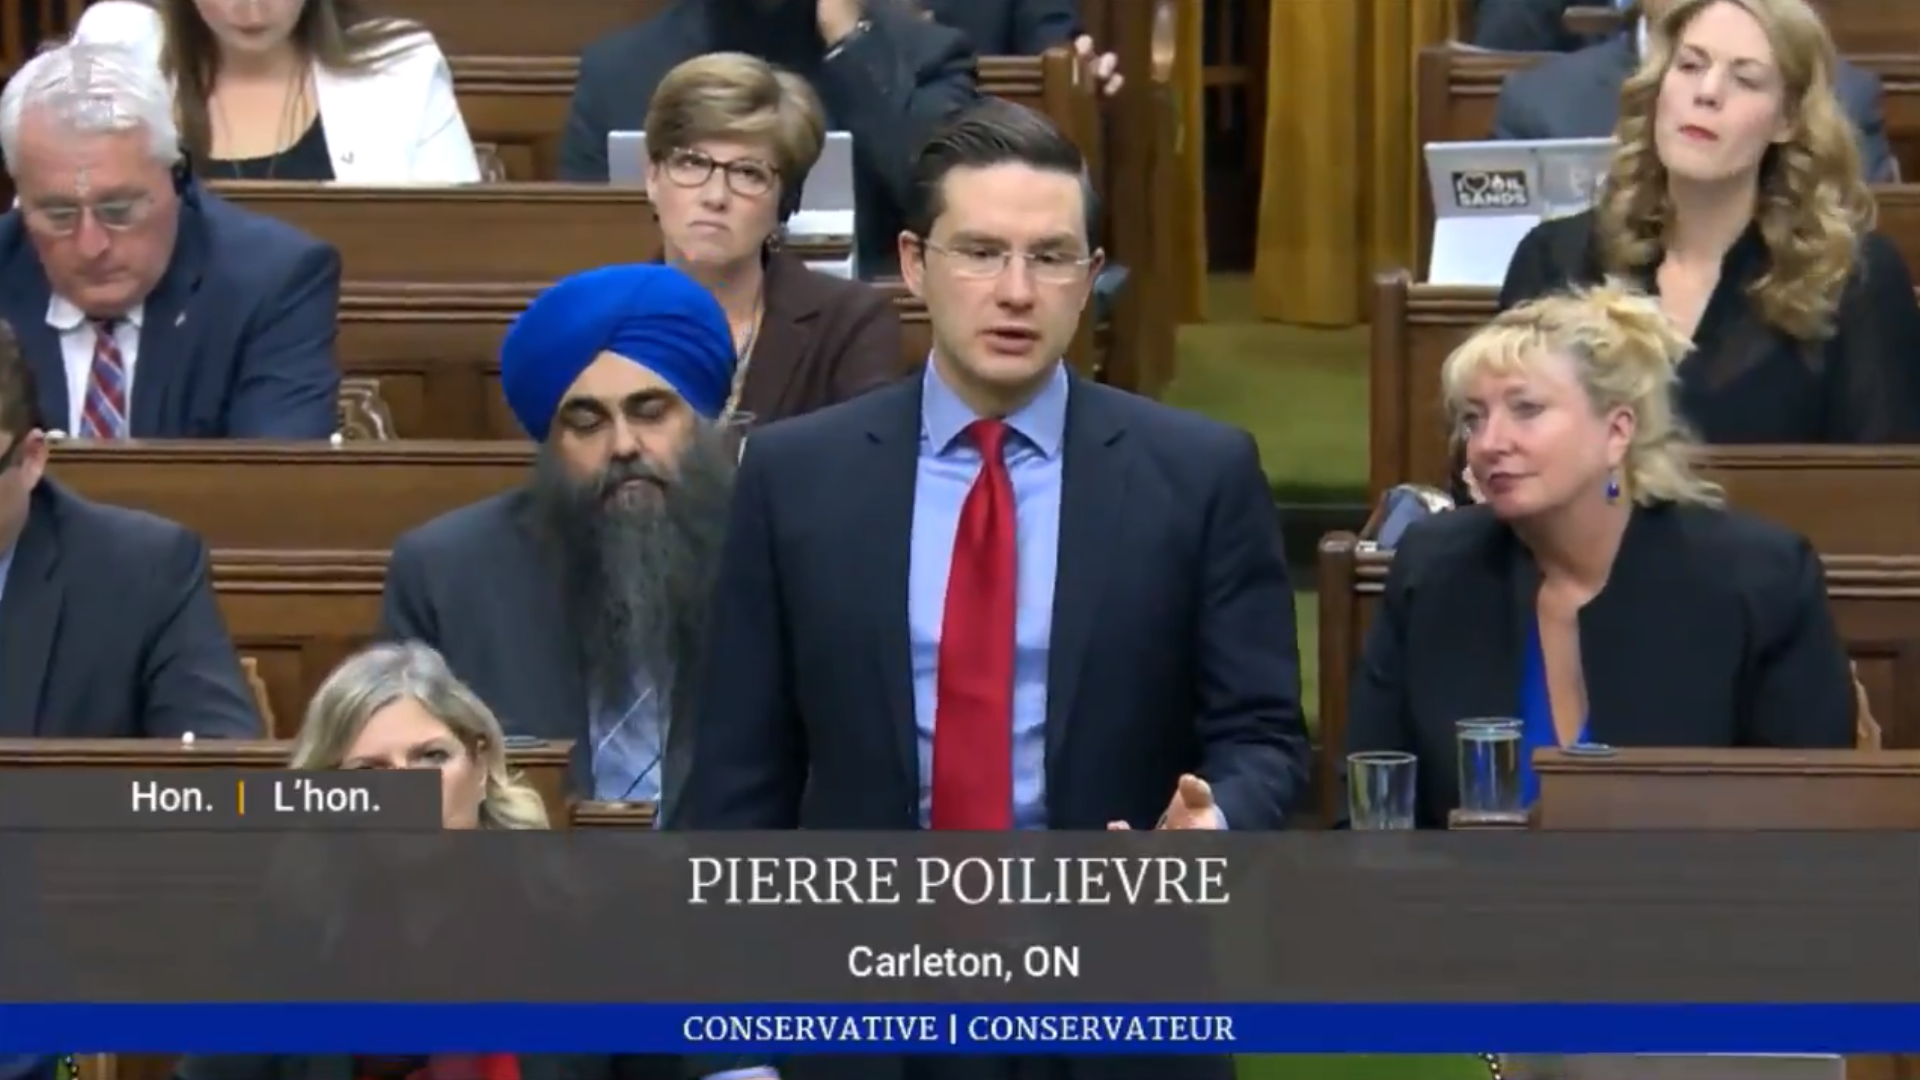 Pierre Poilievre says he supports gay marriage, won't open abortion debate